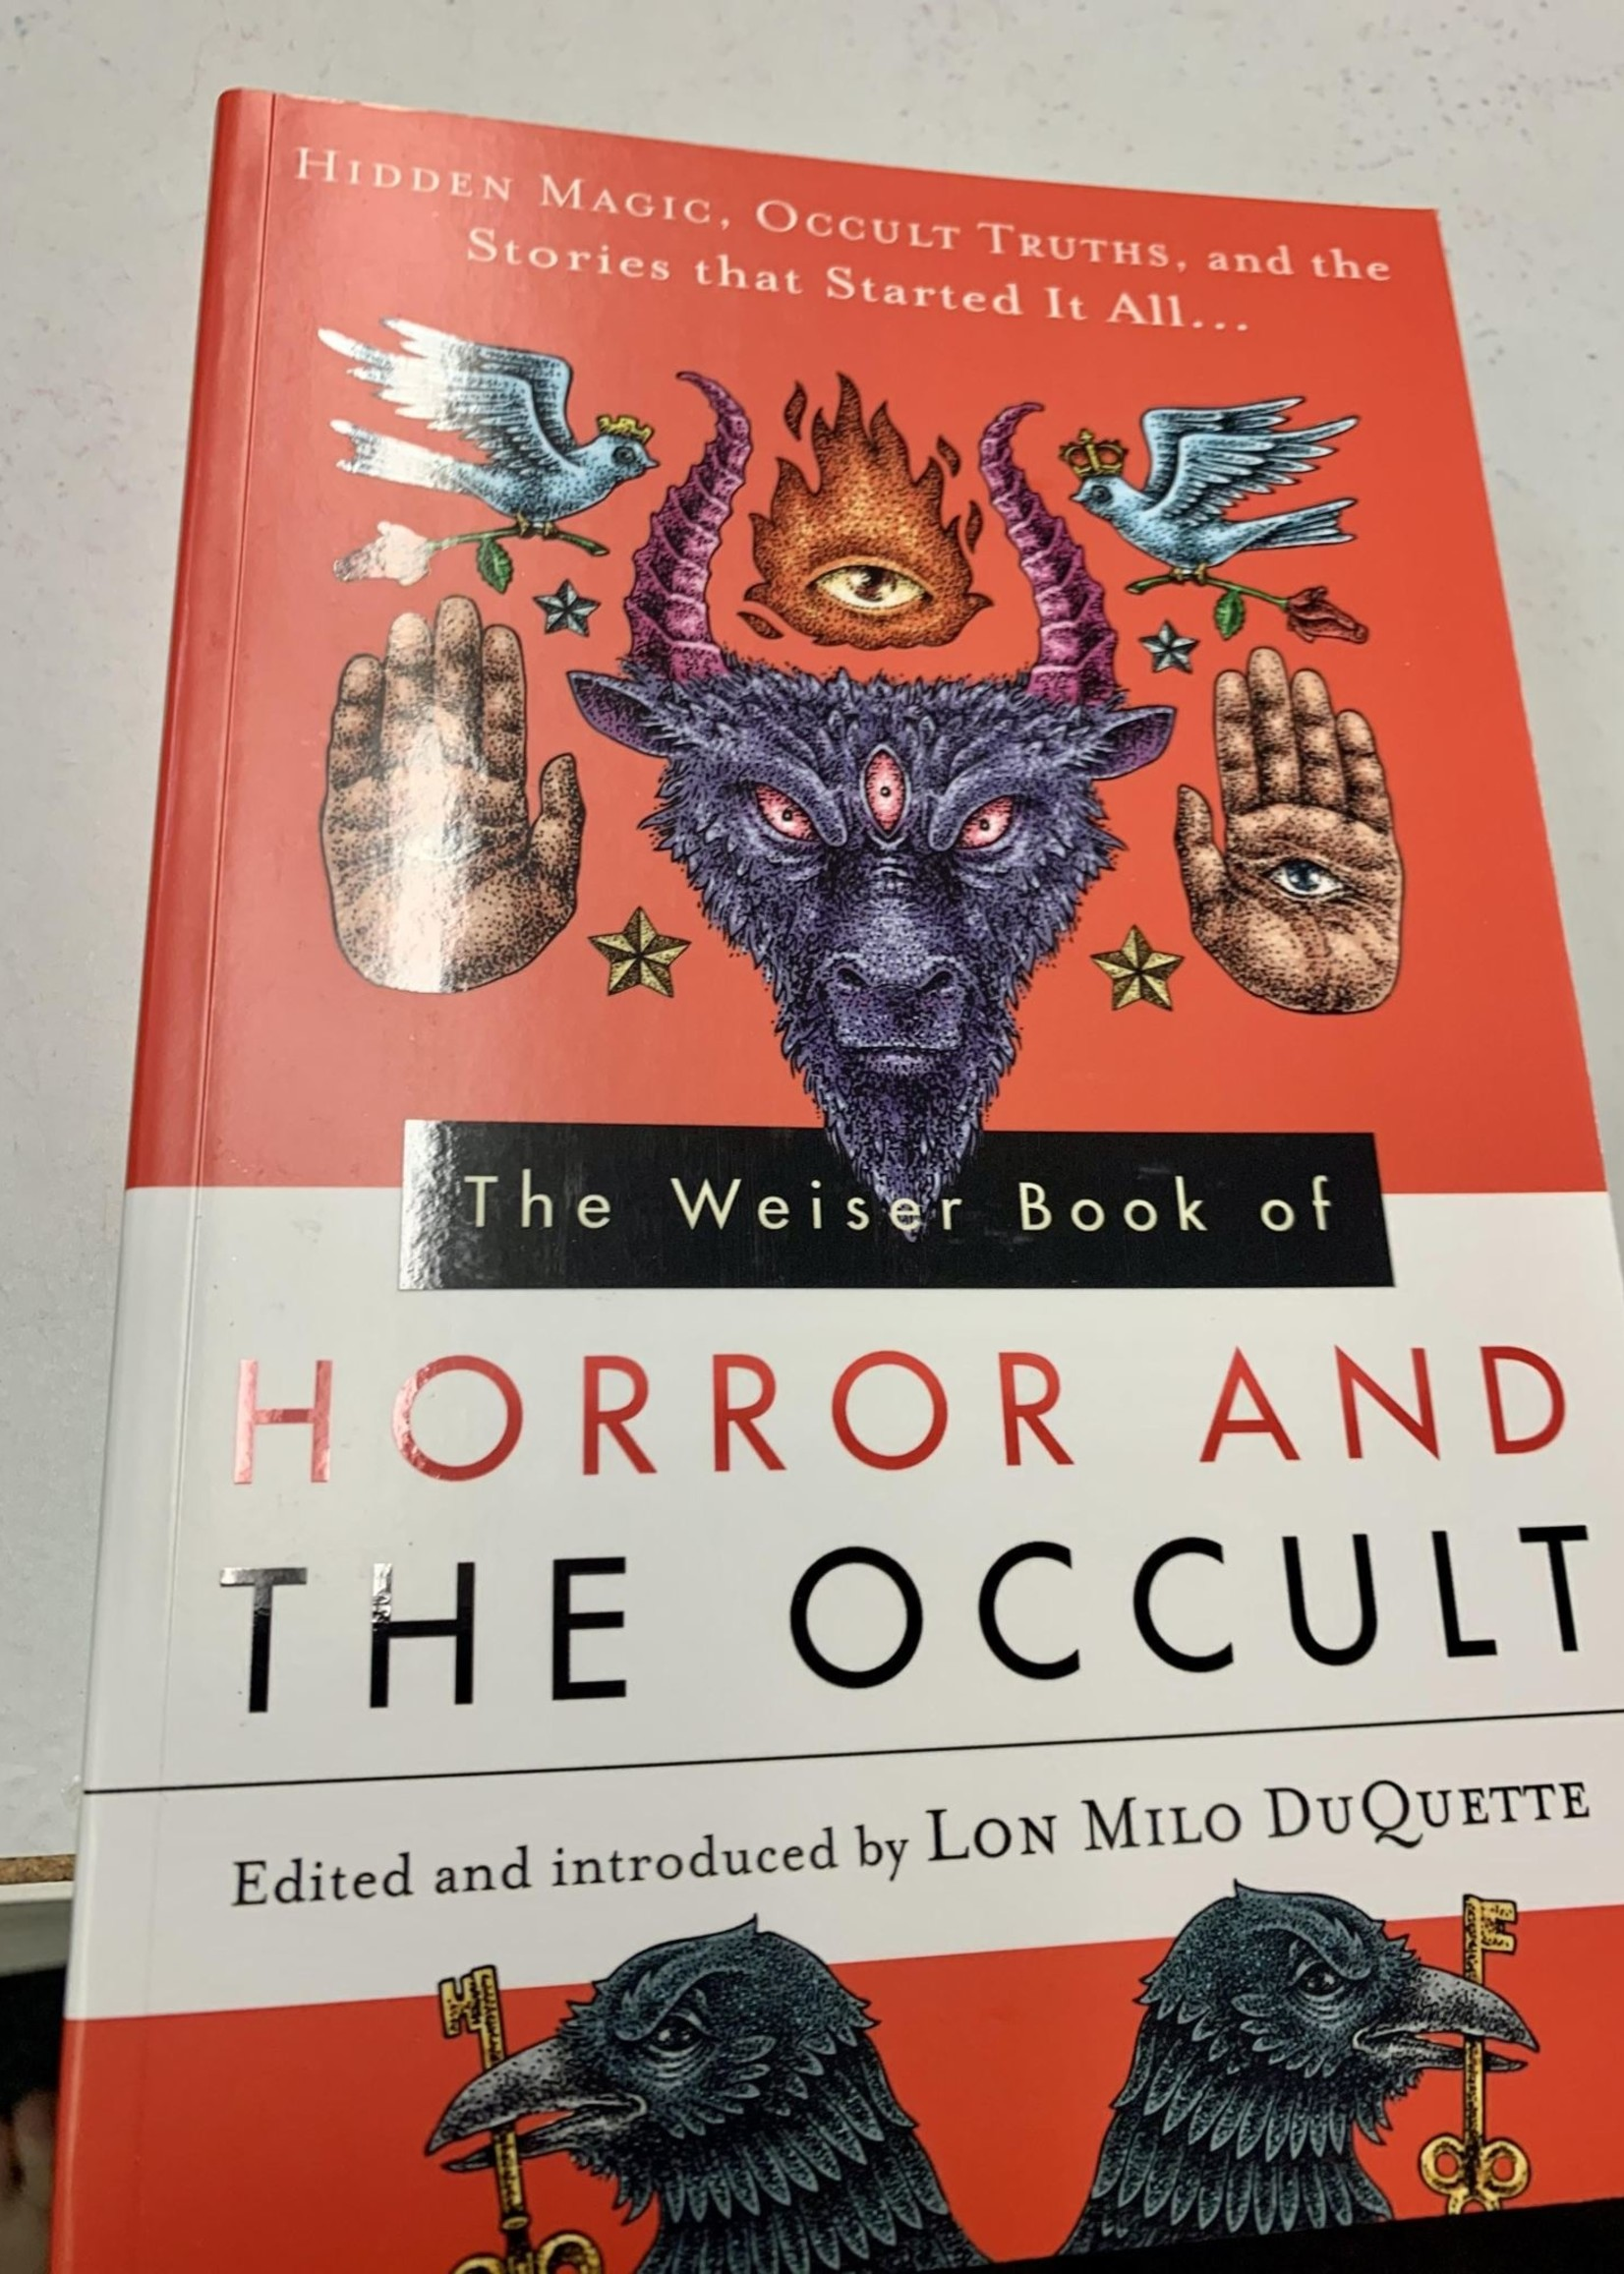 The Weiser Book of Horror and the Occult - forward by Lon Milo DuQuette